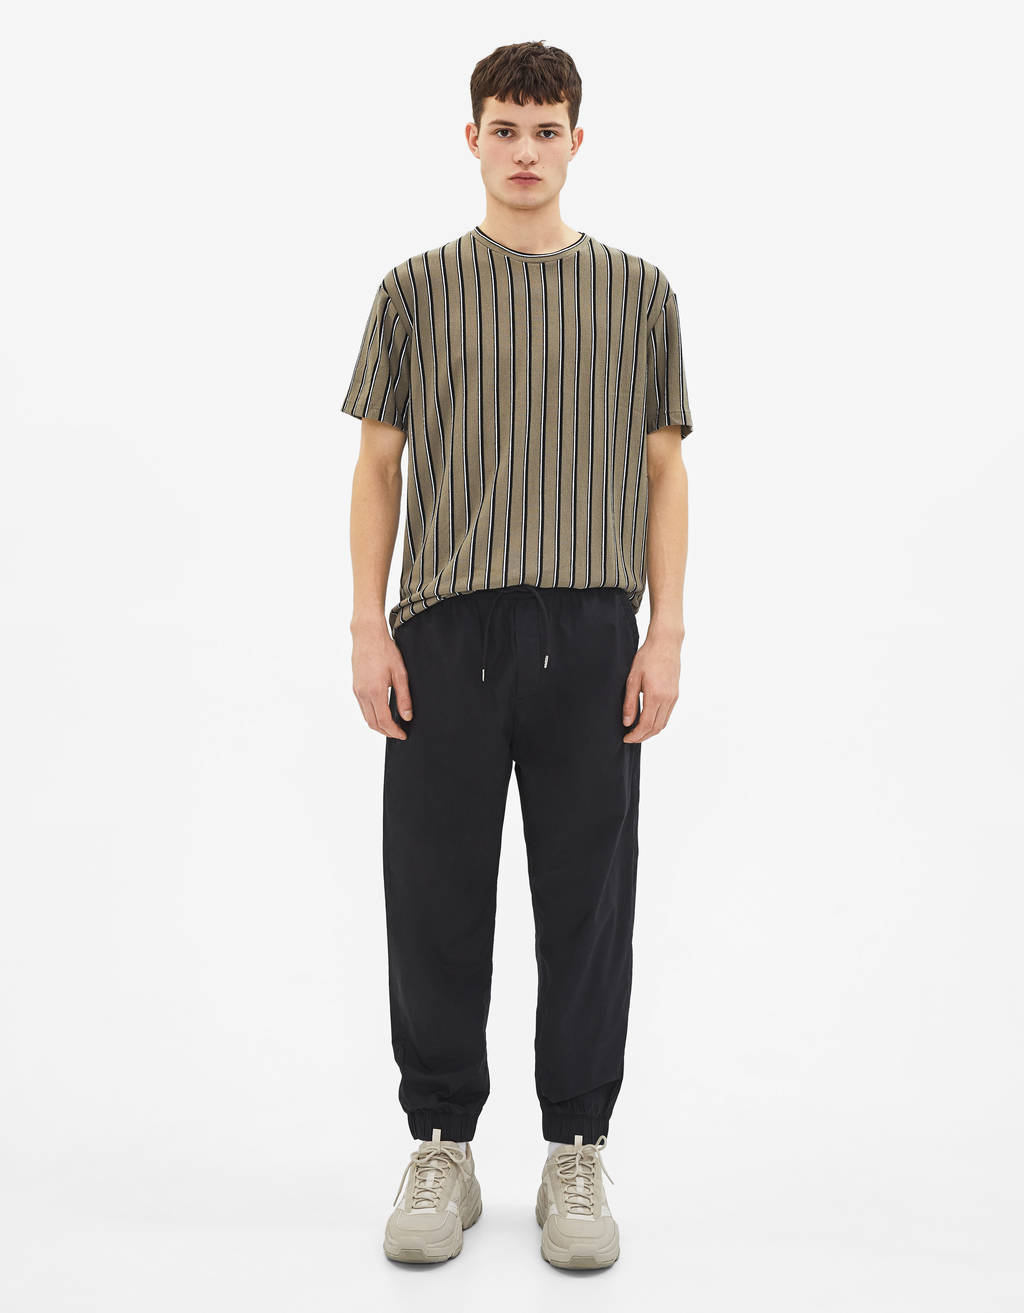 Pantaloni jogger loose fit